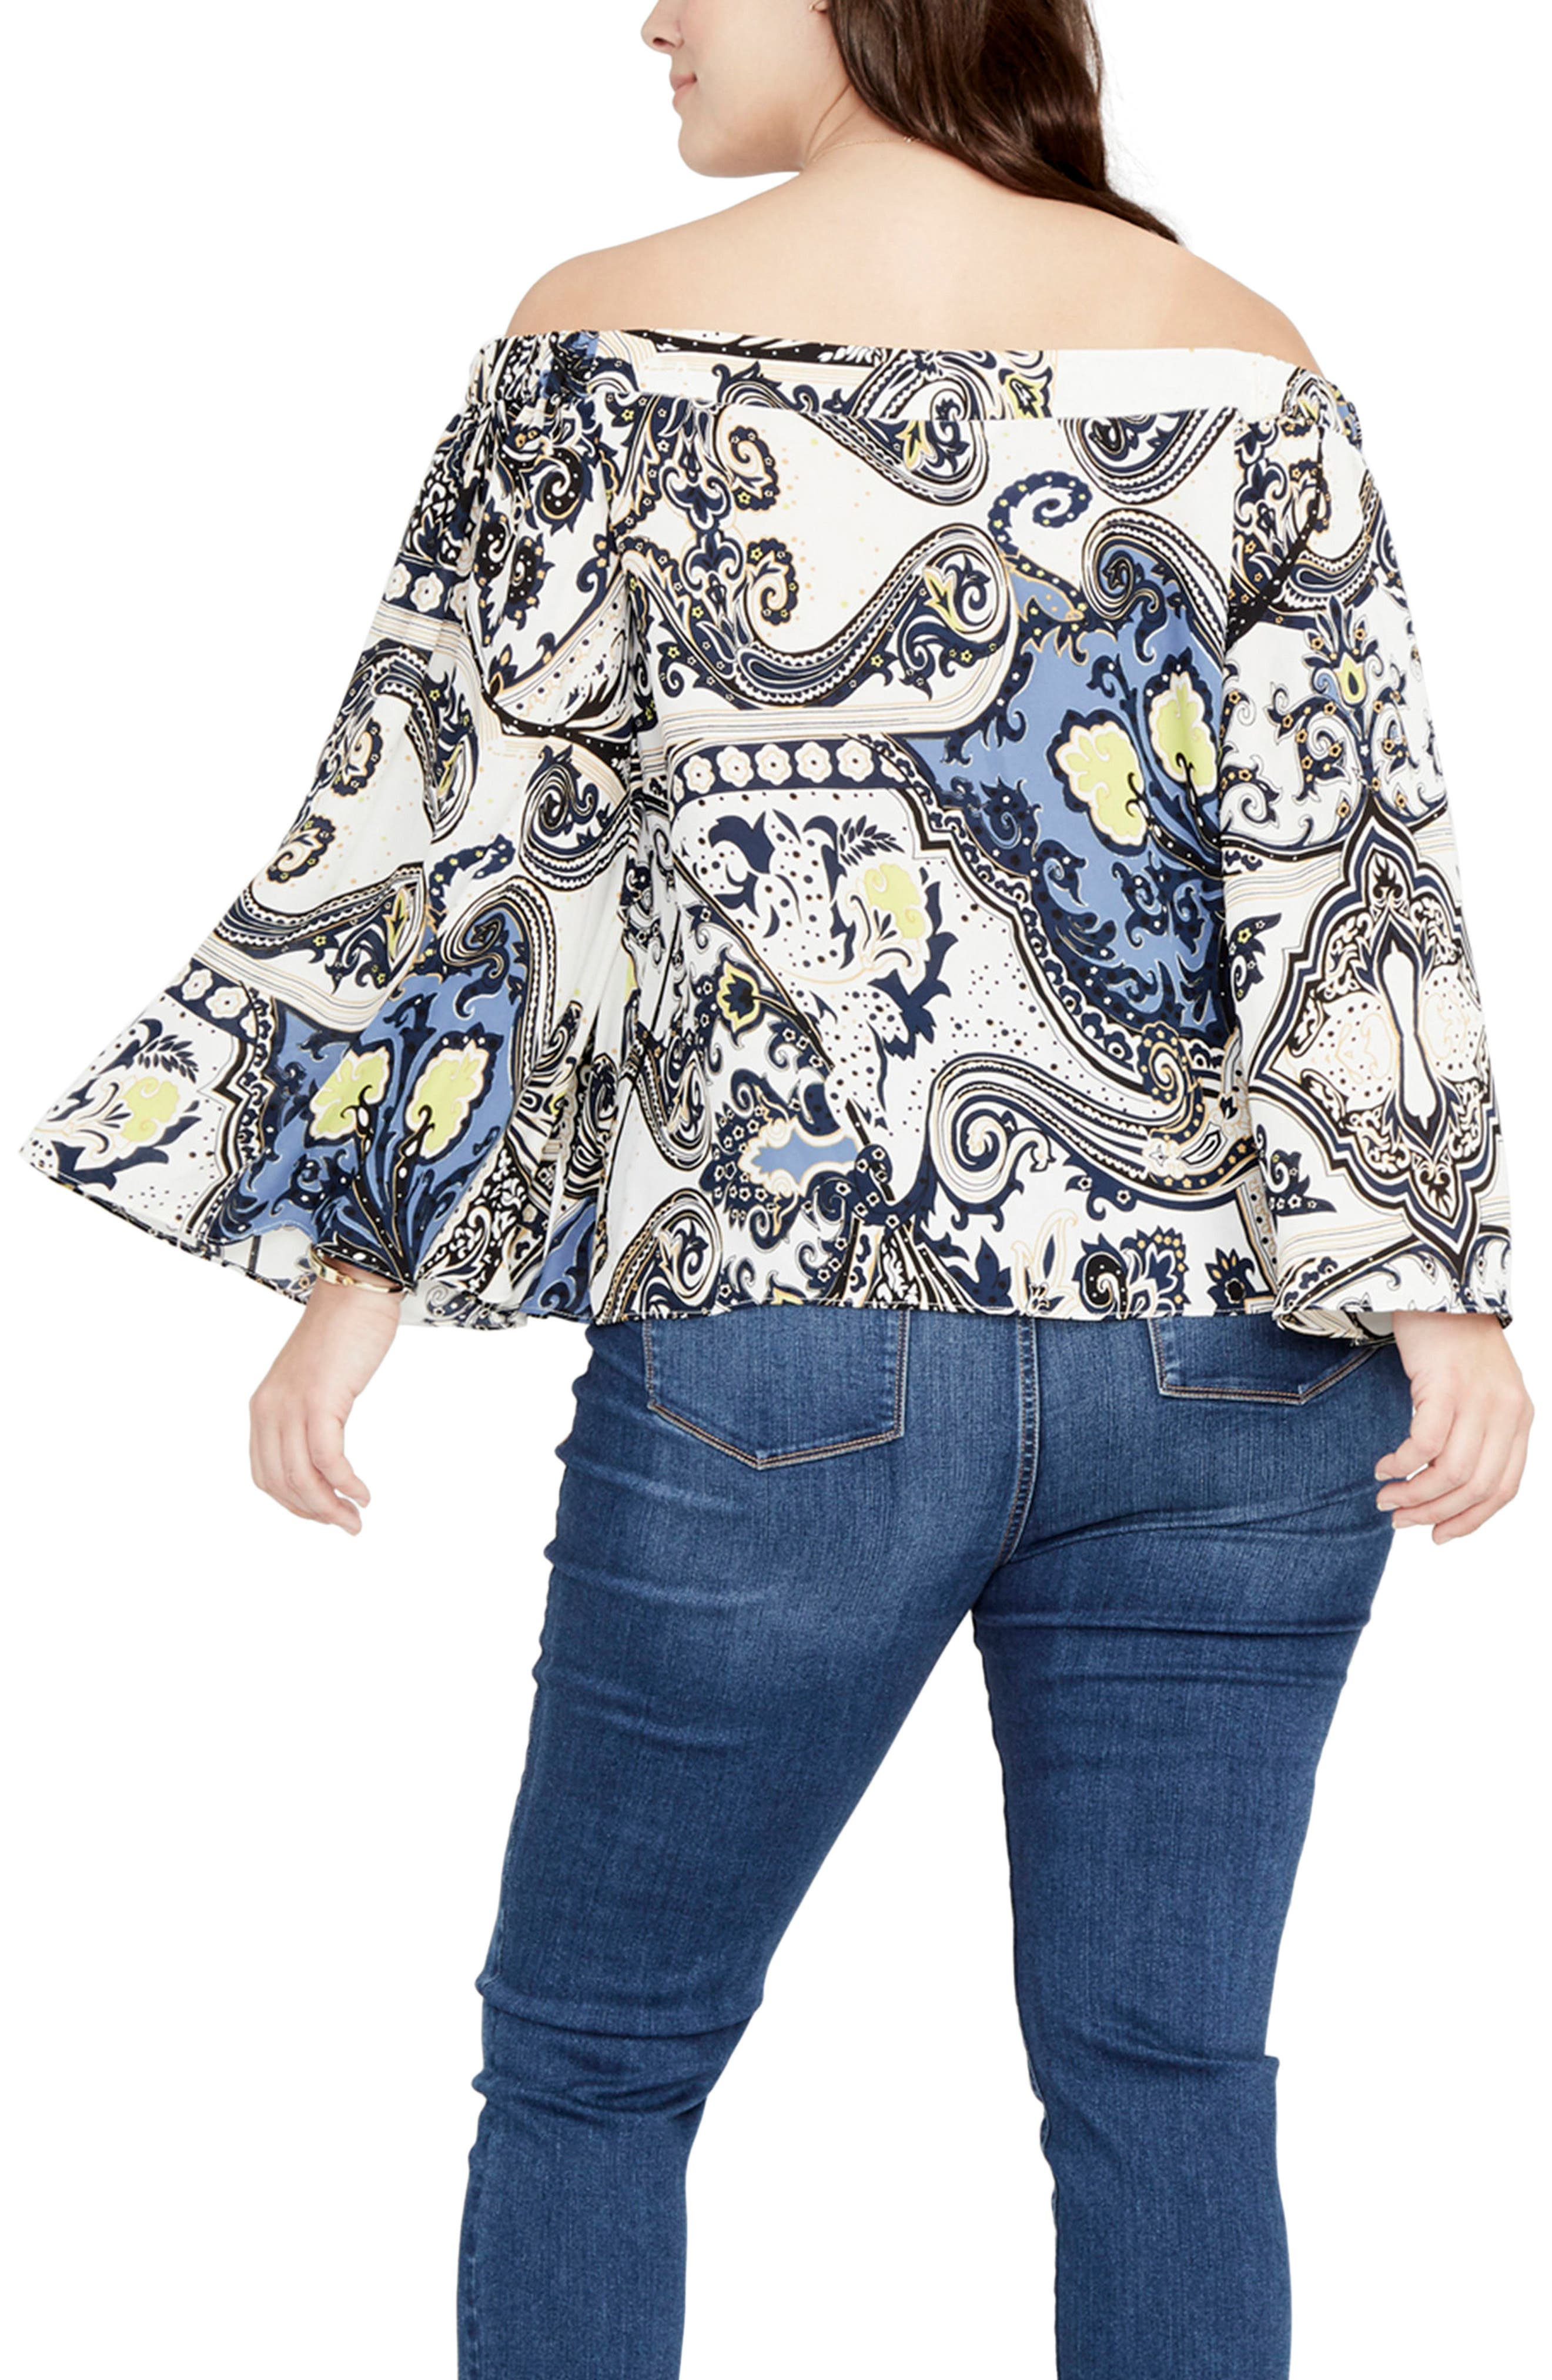 Cape Sleeve Off the Shoulder Top,                             Alternate thumbnail 3, color,                             Ivory/ Navy Combo